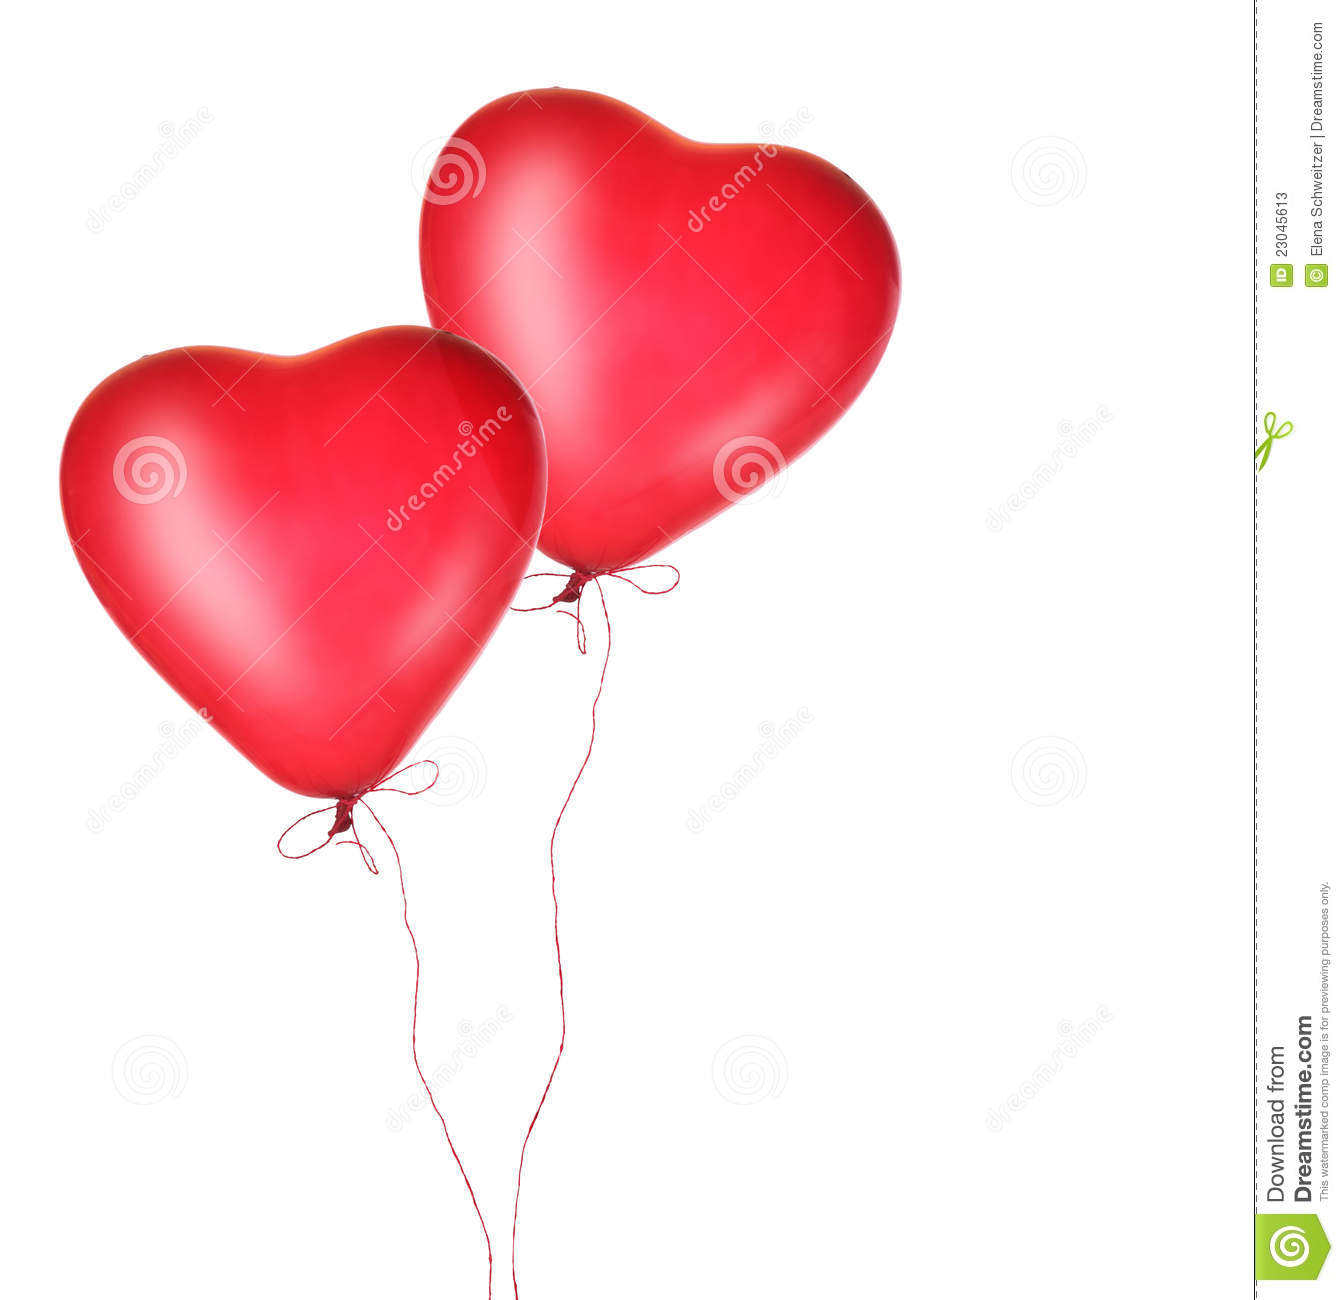 Red Heart Balloons Stock Photos - Image: 23045613